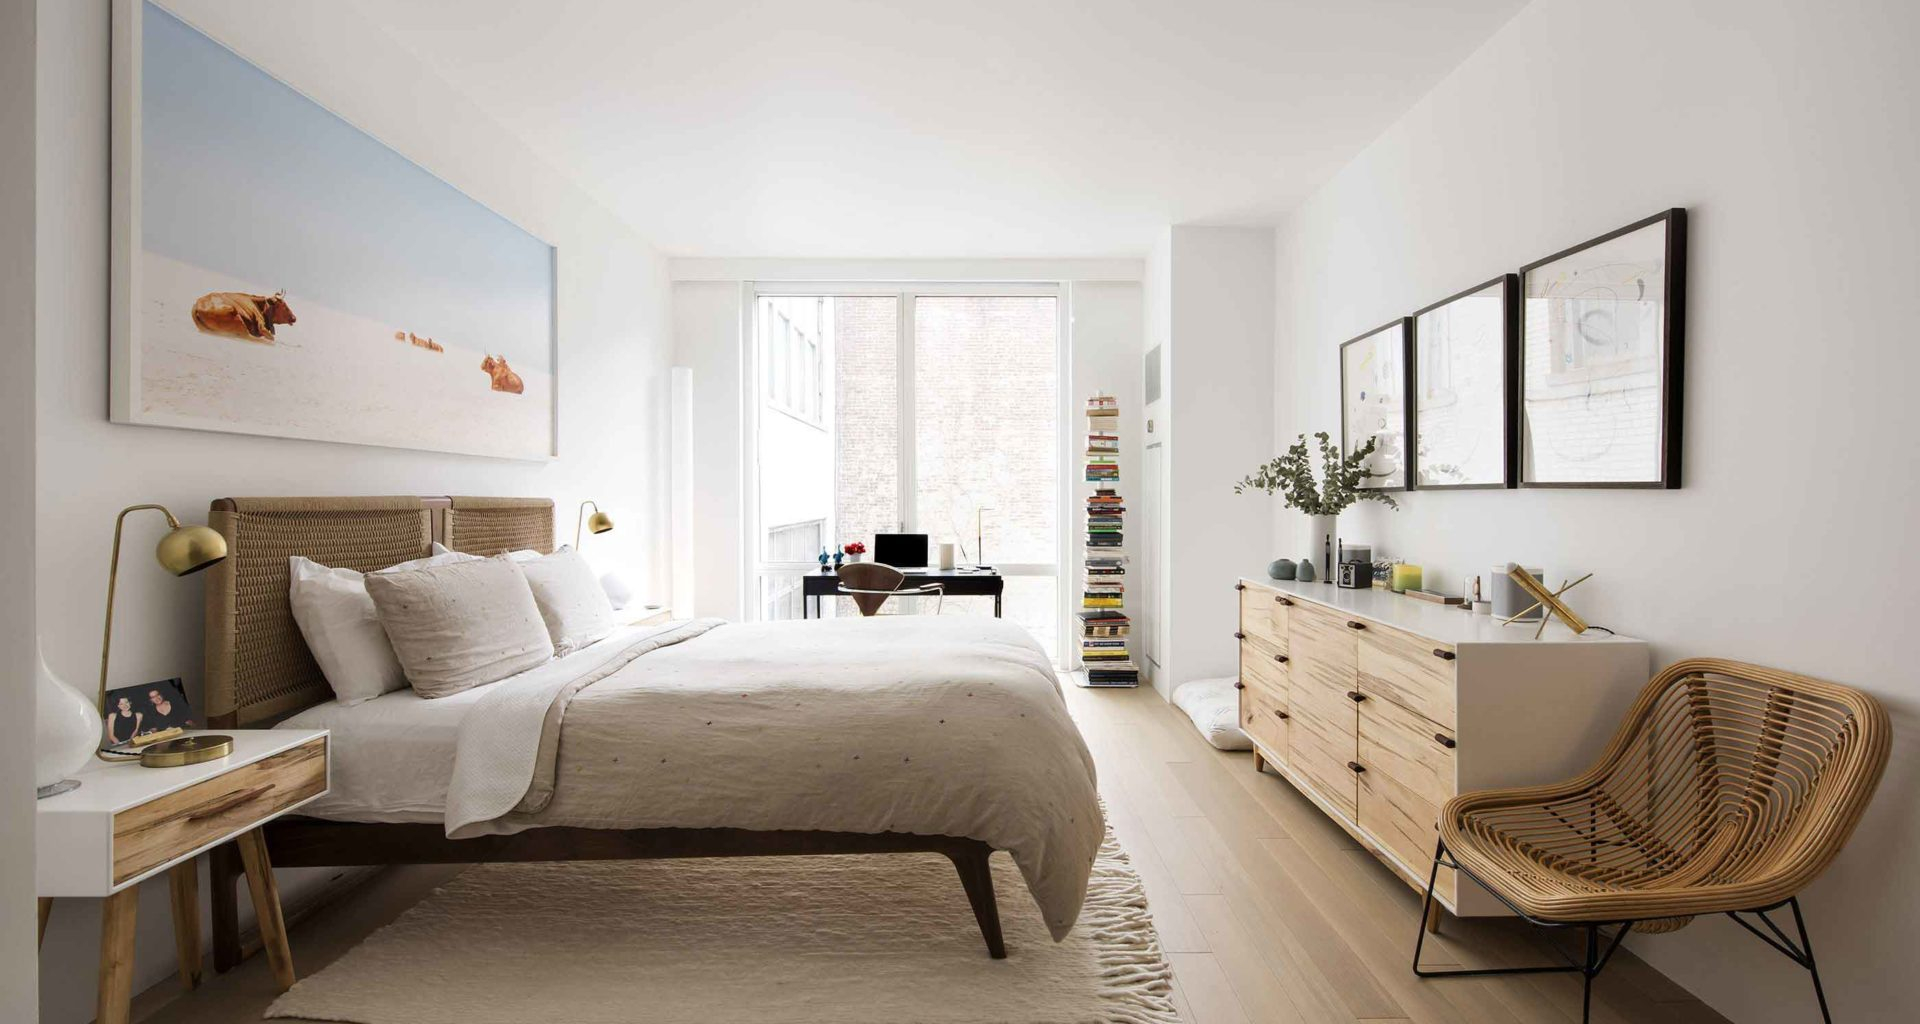 Urban Modern Bedroom Ideas For Your Home throughout 13 Clever Concepts of How to Make Modern Bedroom Pictures